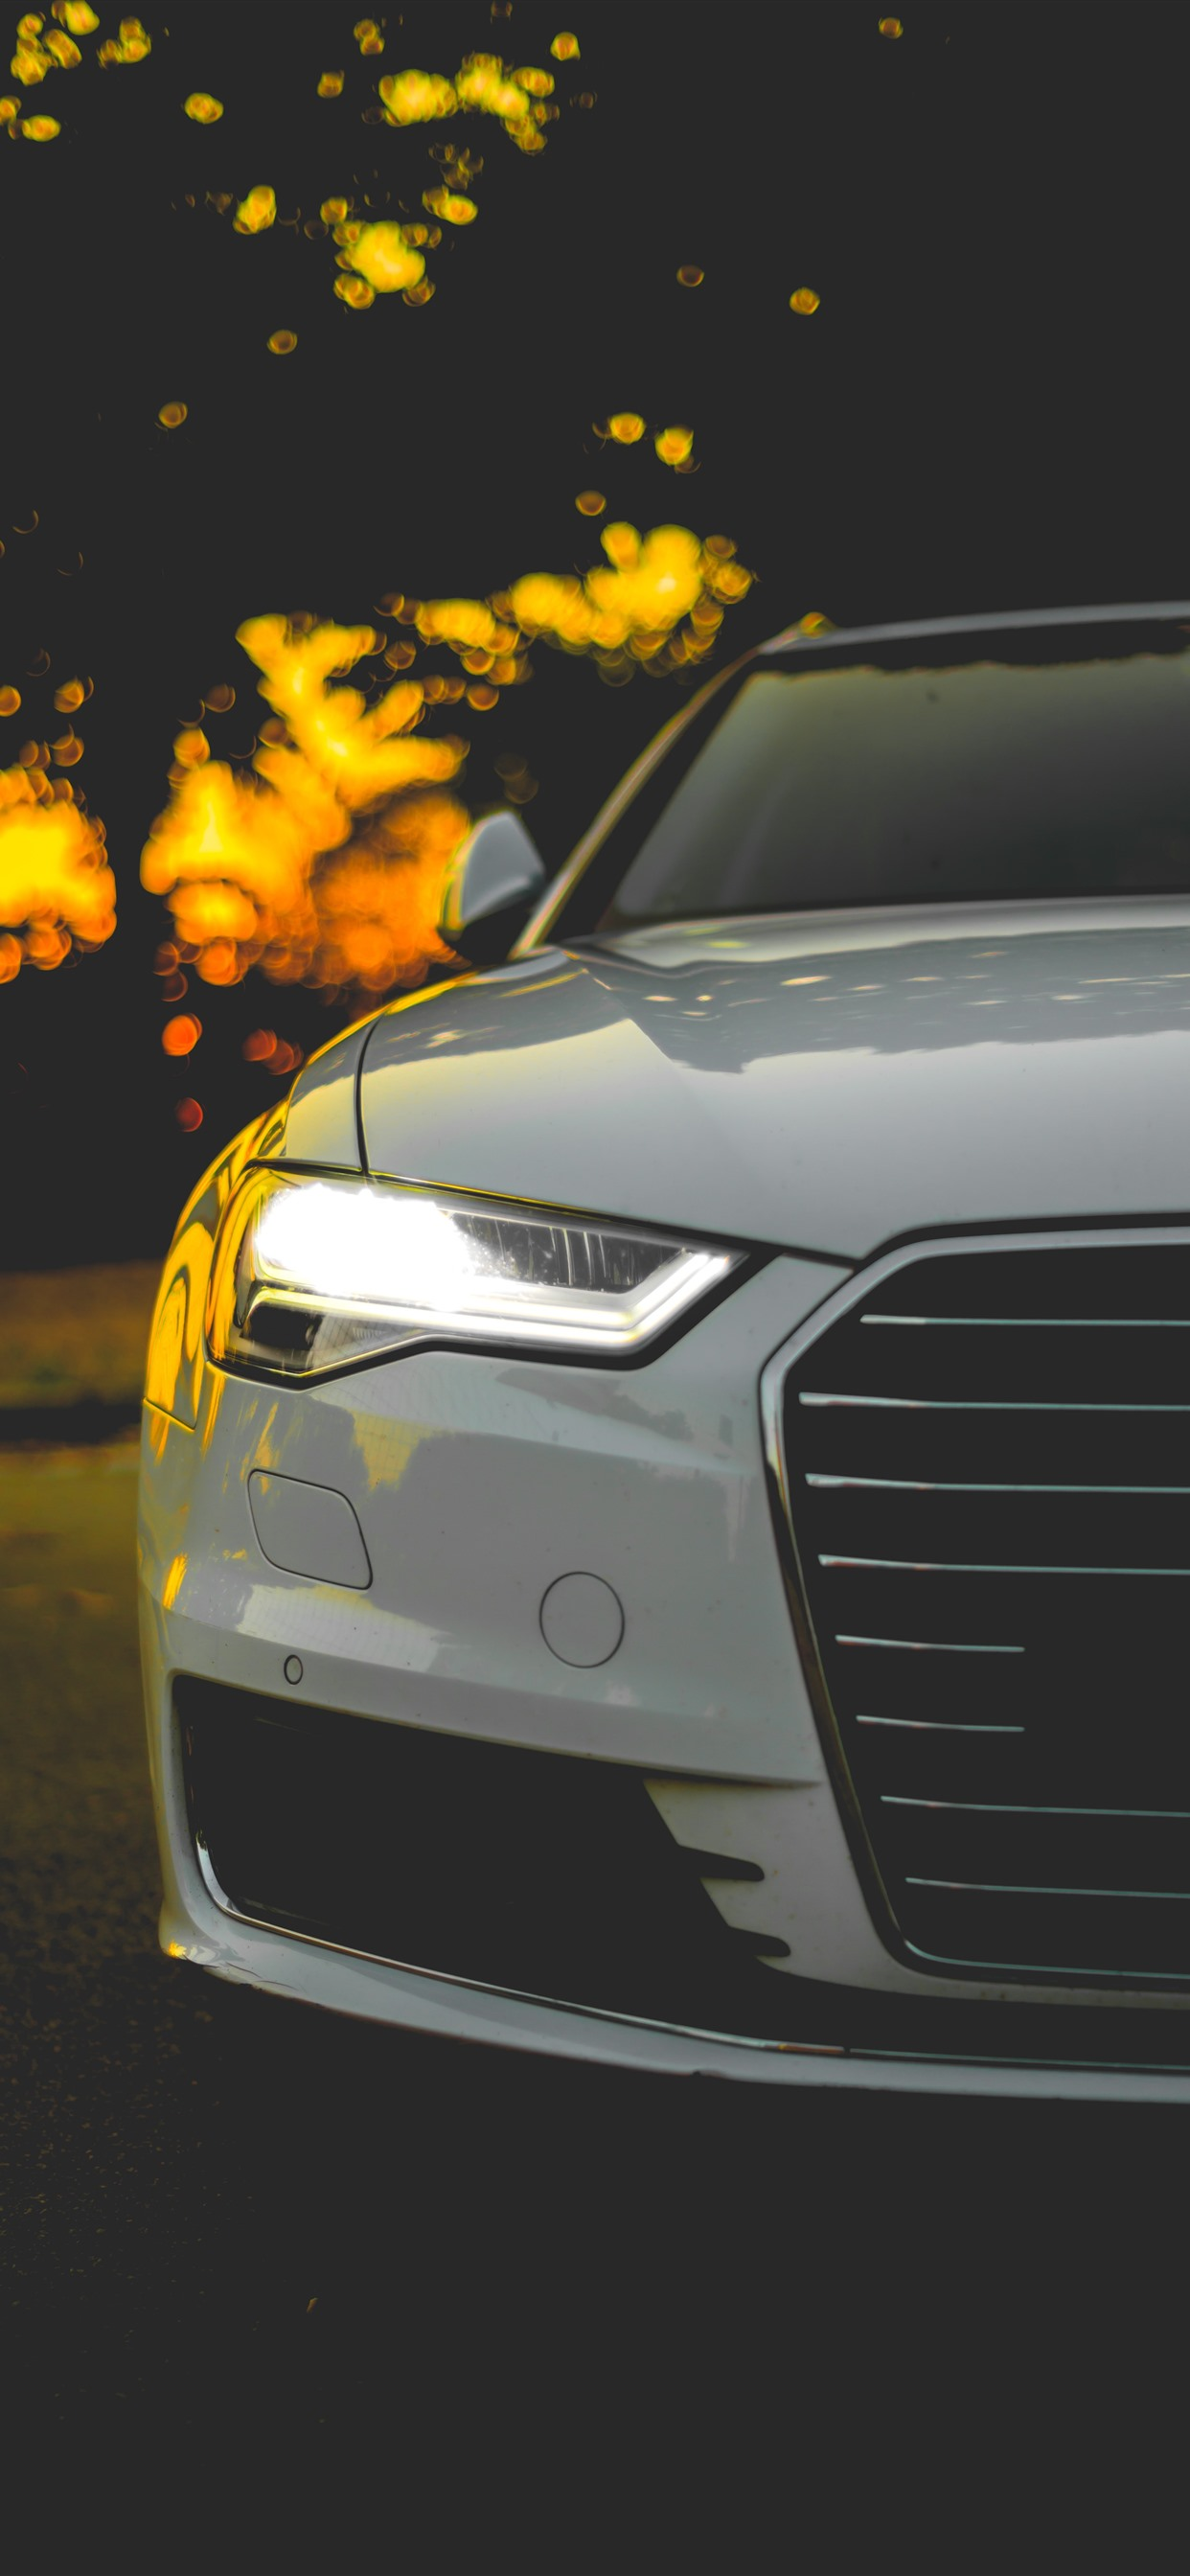 Audi White Car Front View Headlight 1242x2688 Iphone 11 Pro Xs Max Wallpaper Background Picture Image